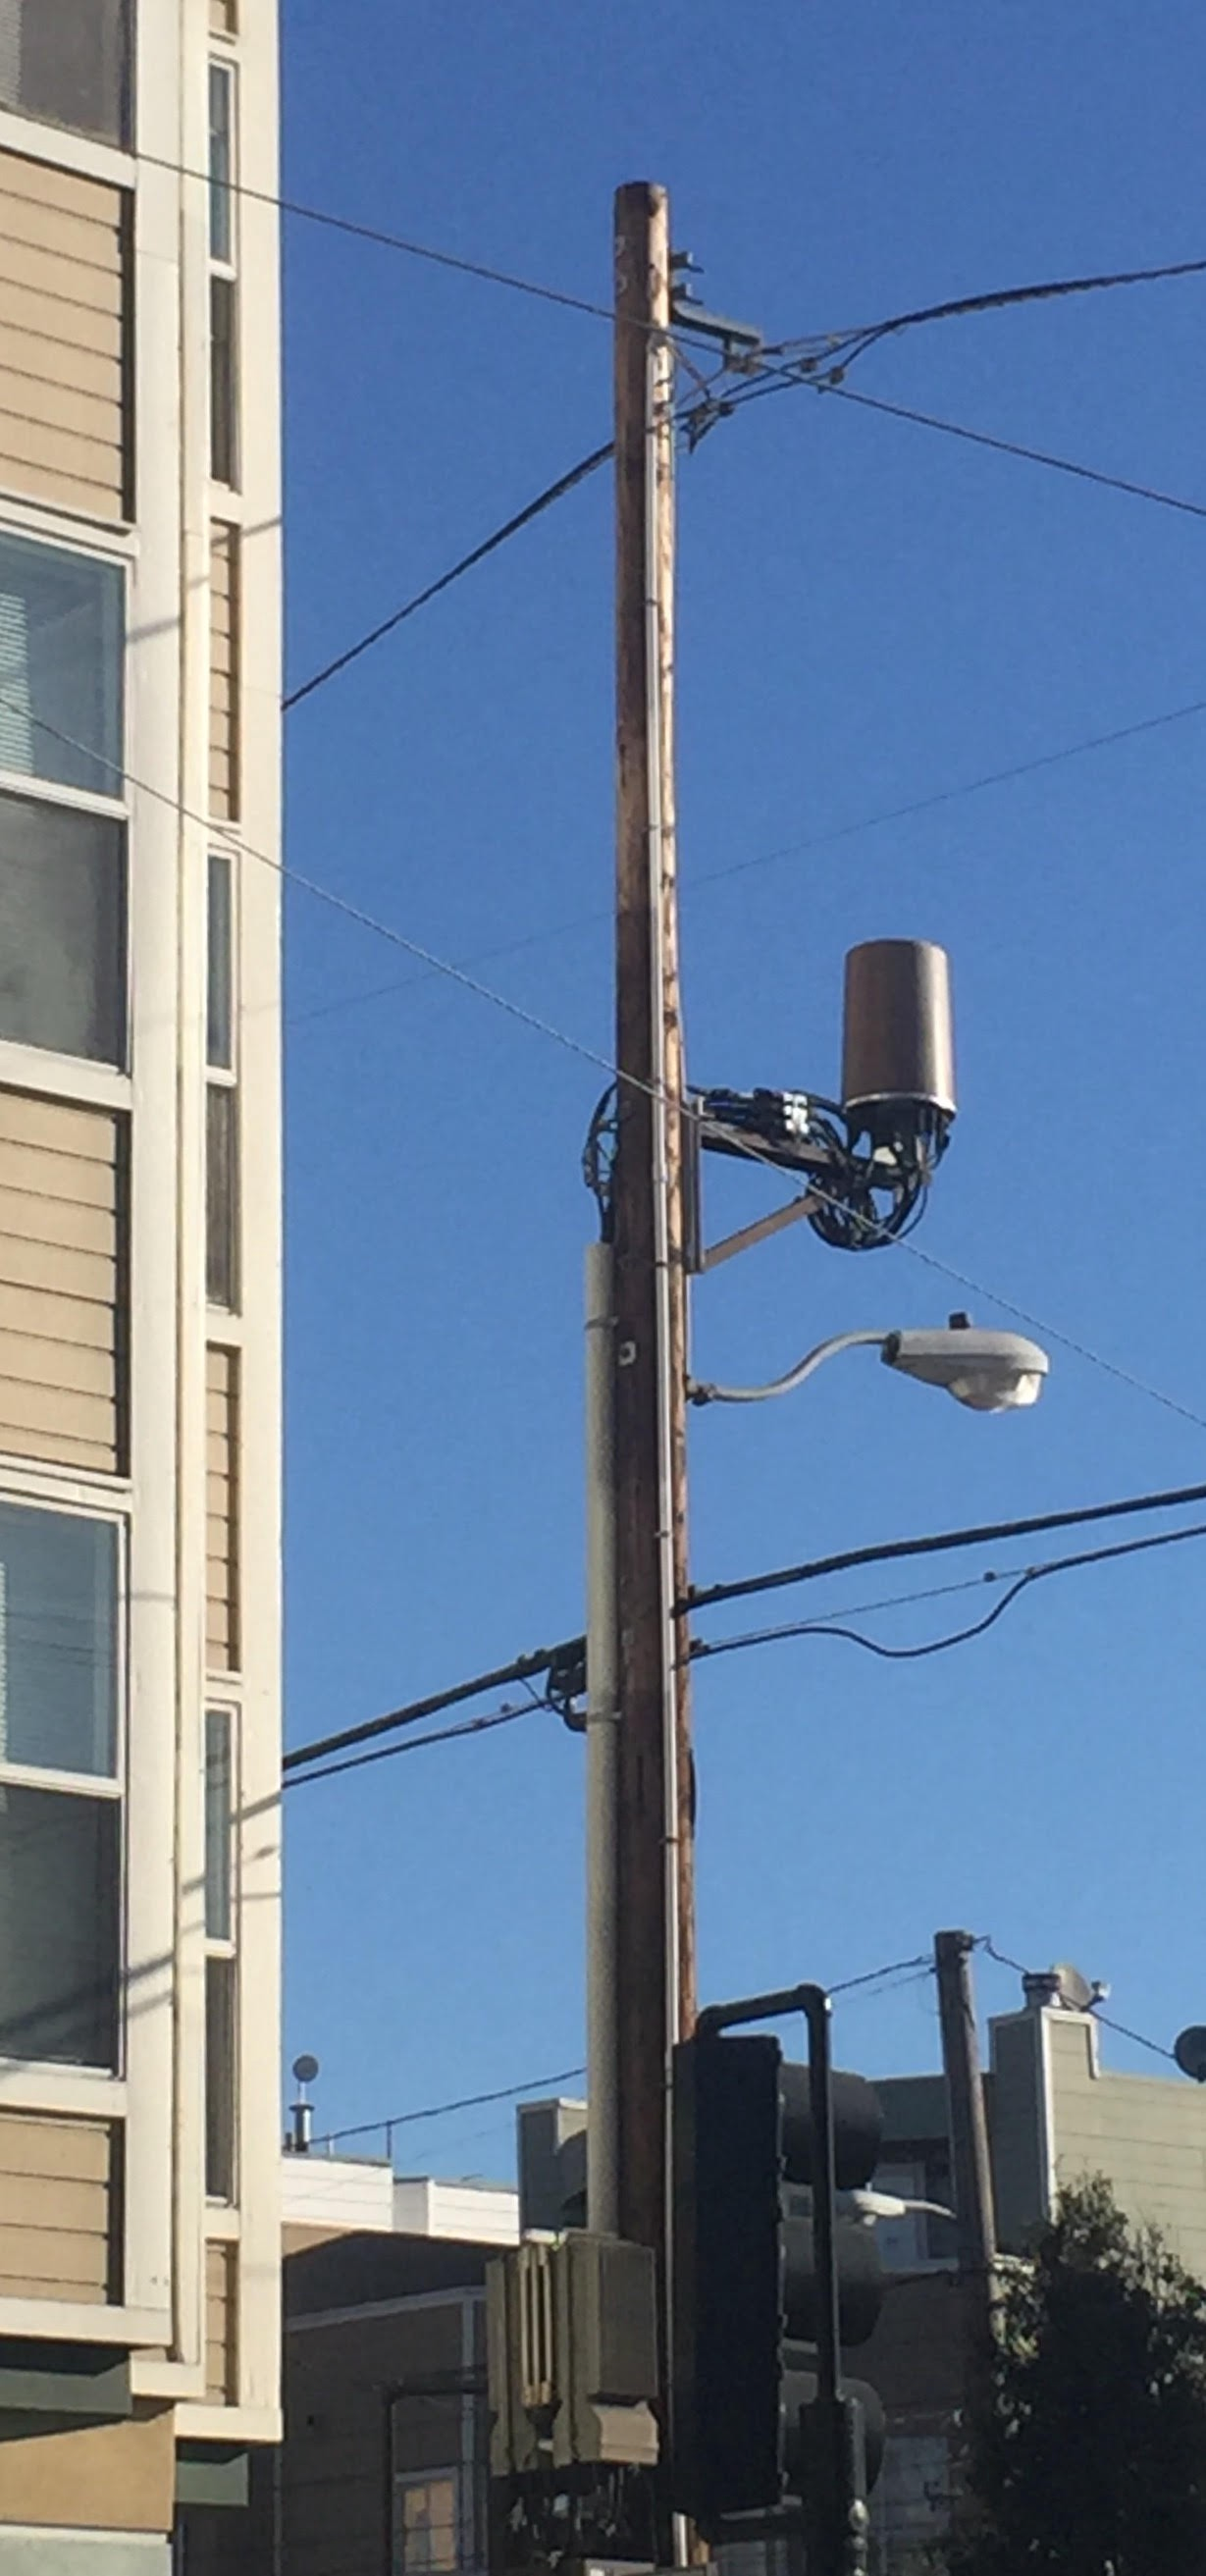 Part 4   Design Tips for Small Cells Based on Pole or Location Type